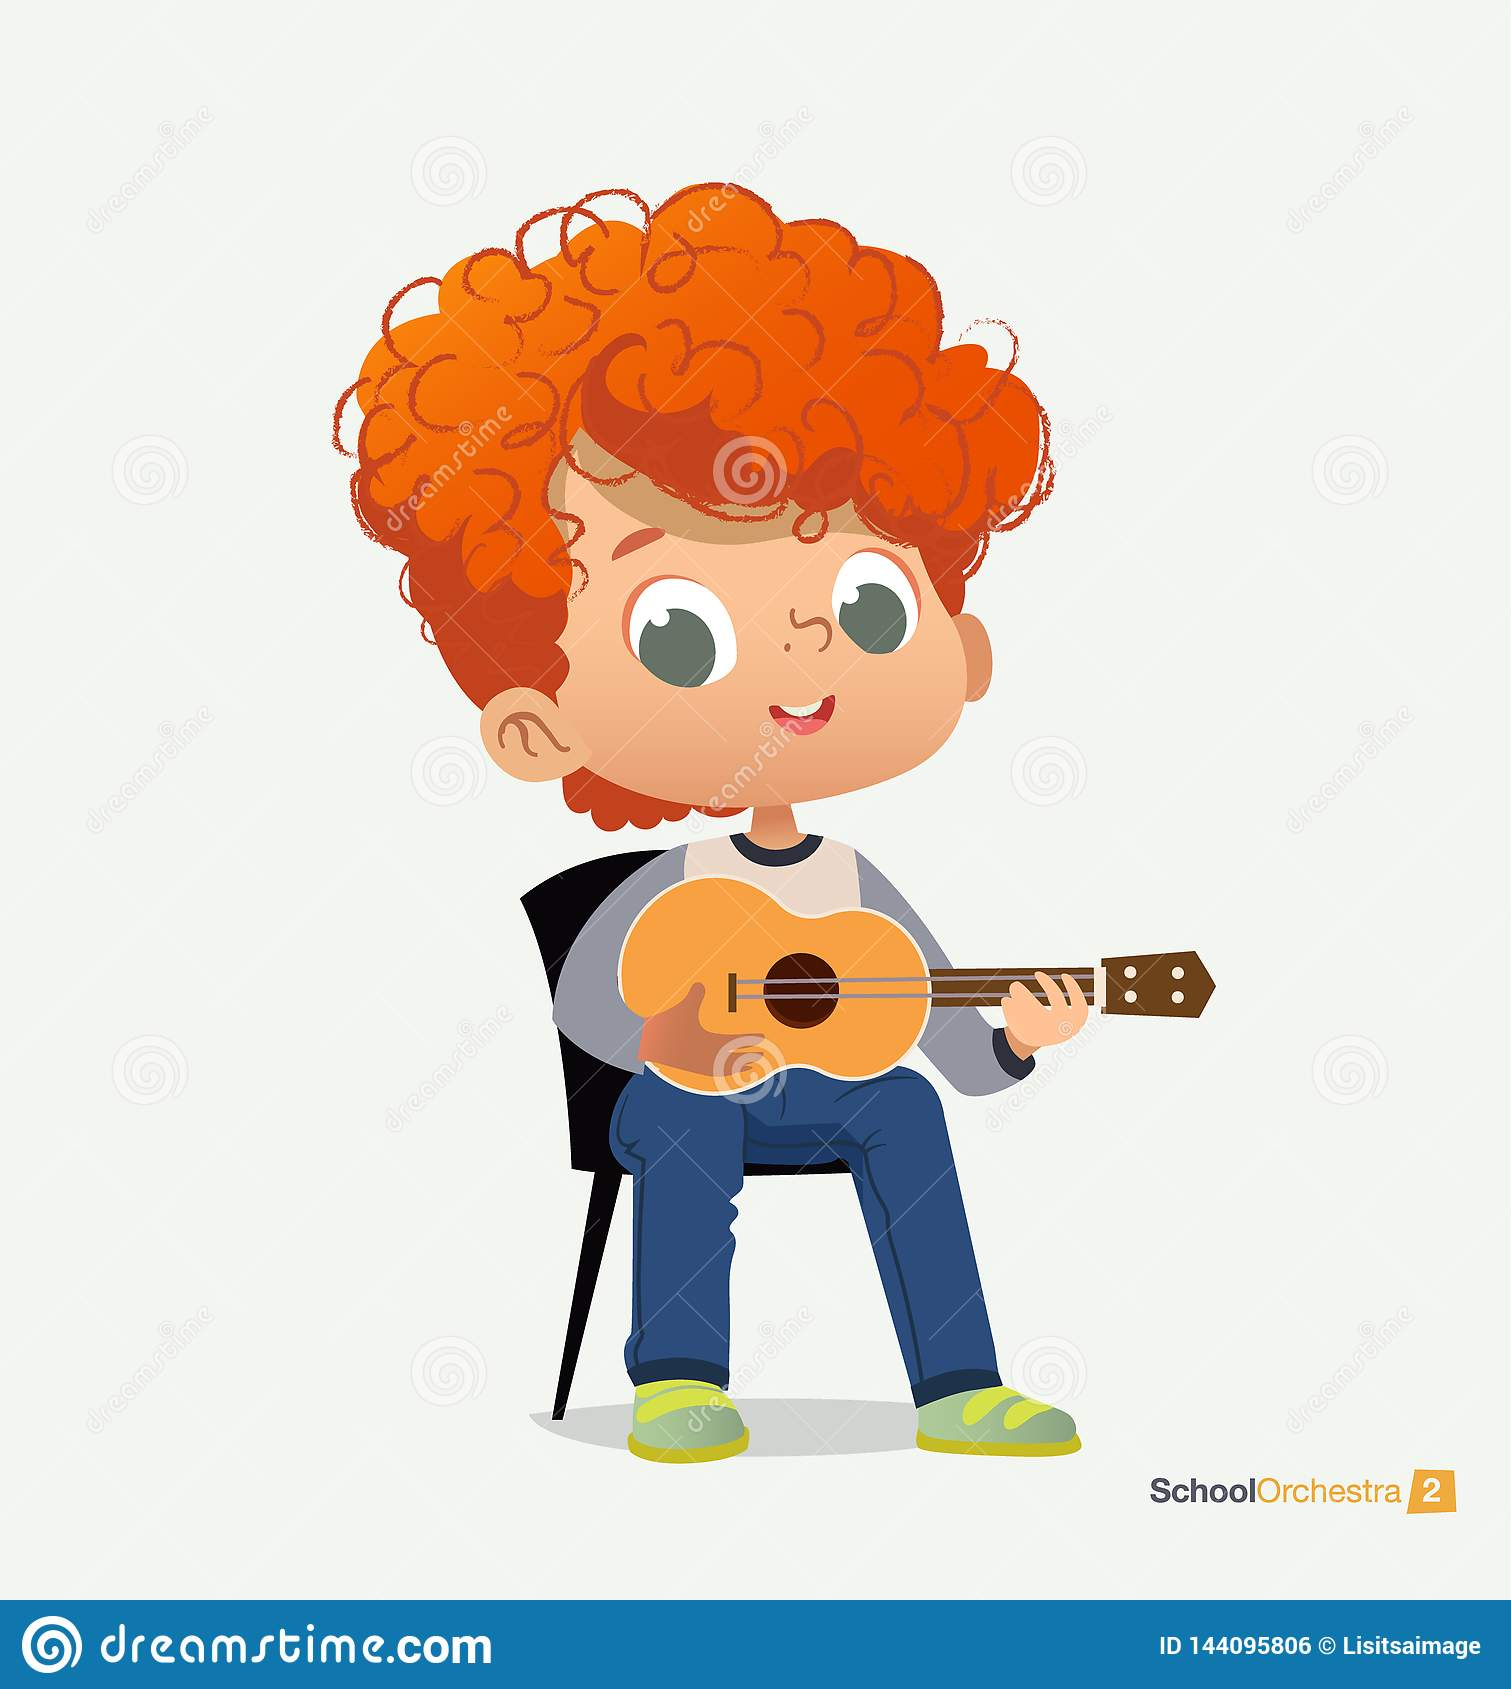 Curly Boy Stock Illustrations 3 138 Curly Boy Stock Illustrations Vectors Clipart Dreamstime